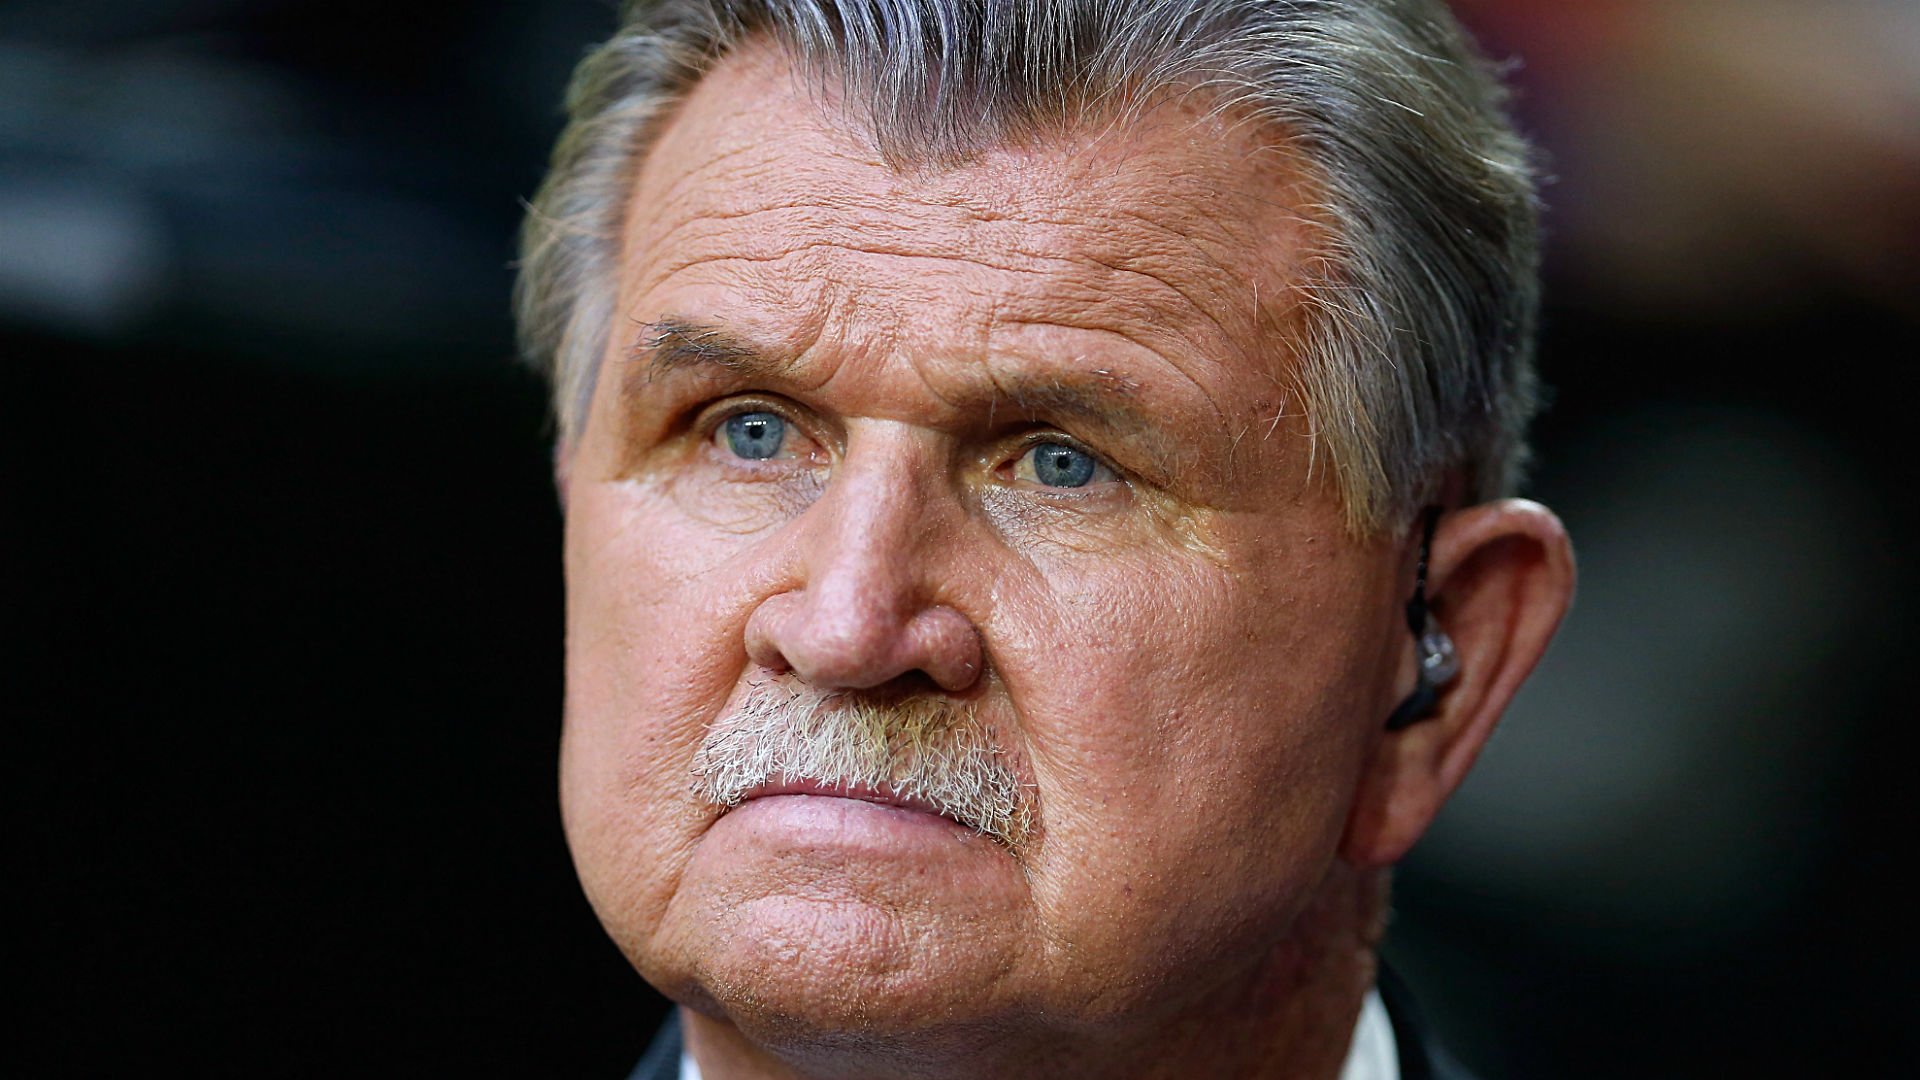 Former Bears coach Mike Ditka comments on anthem protests, oppression and race